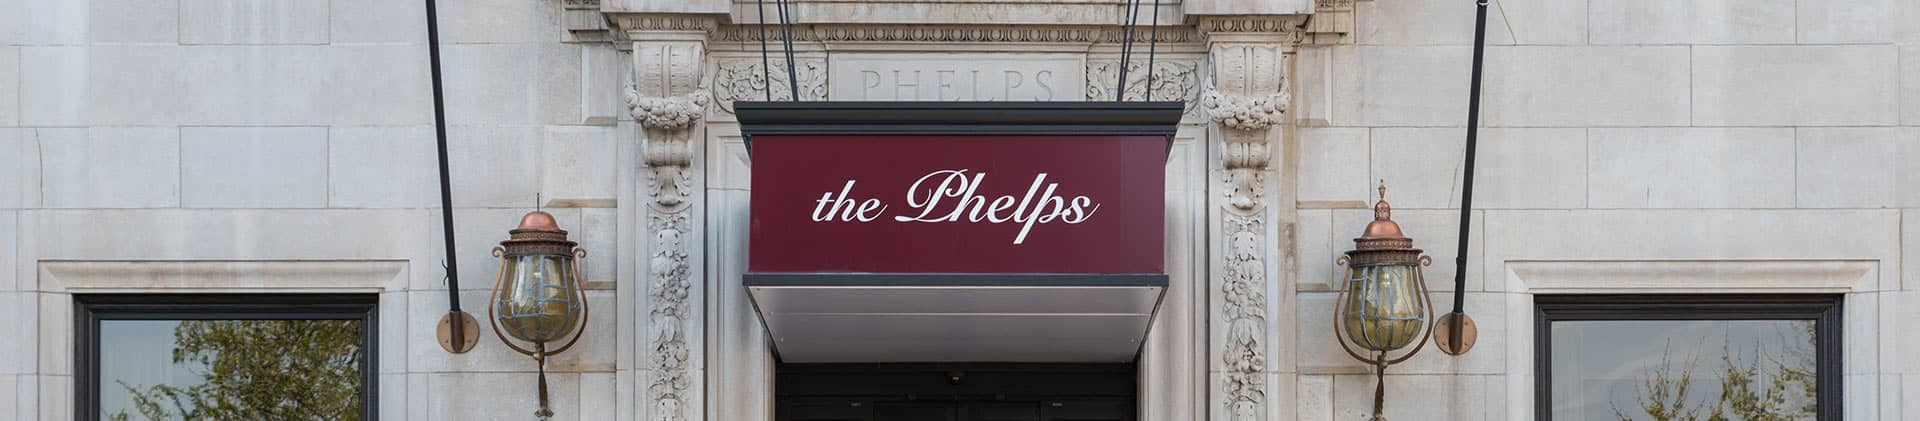 structured equity investments the phelps cincinnati downtown